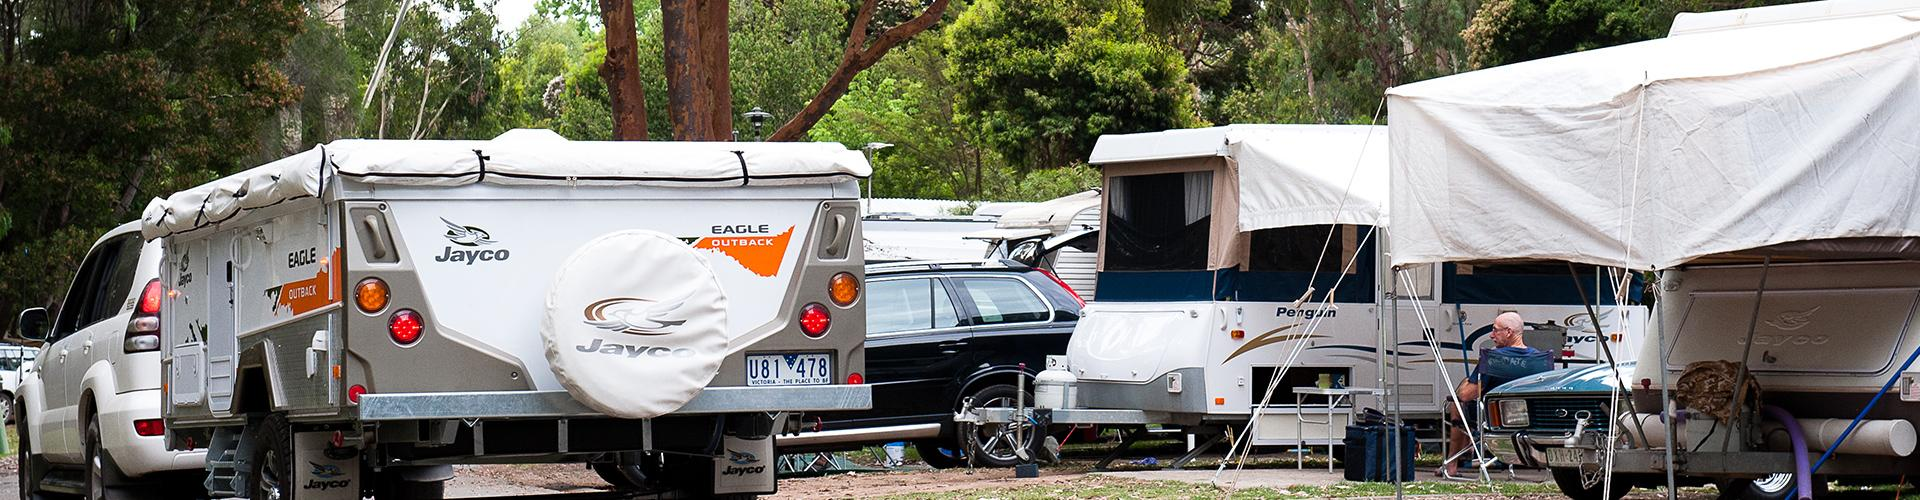 BIG4 Yarra Valley Park Lane Holiday Park - Powered Caravan and Motorhome sites - Car Driving in